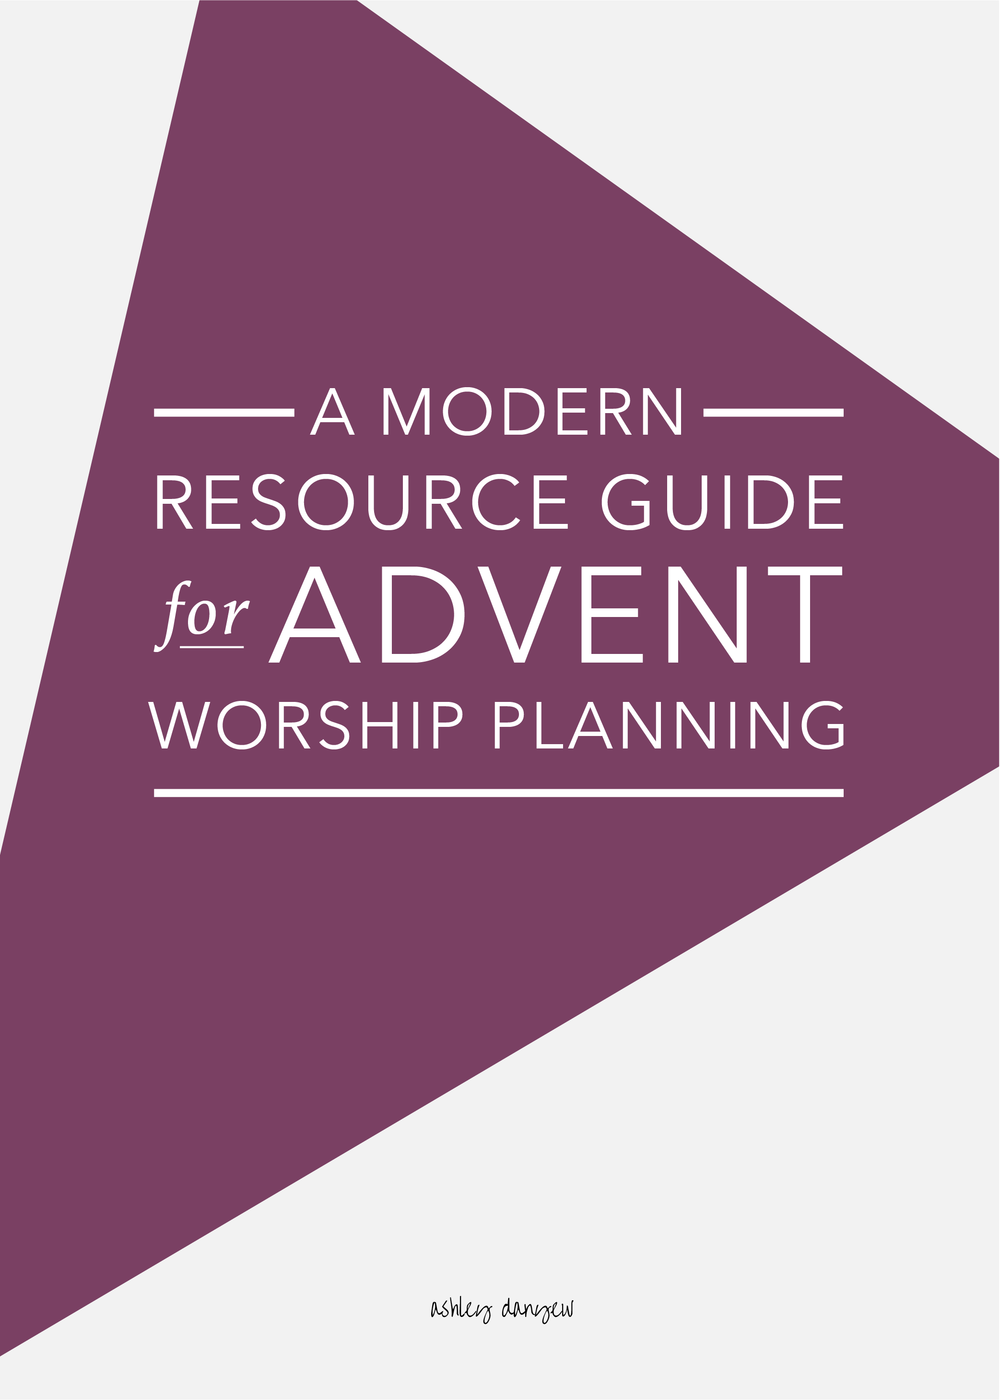 Copy of A Modern Resource Guide for Advent Worship Planning